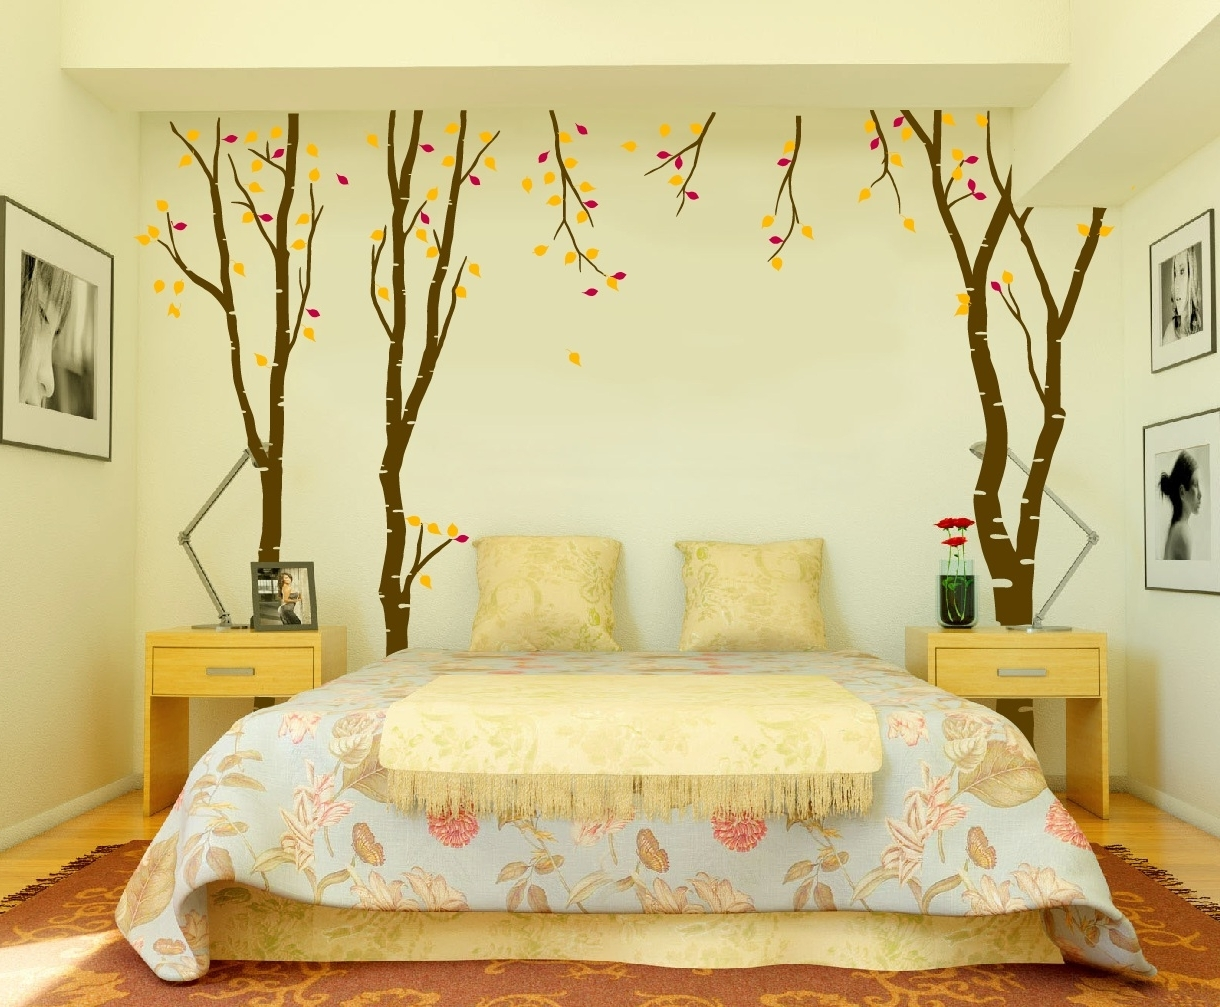 2018 Bedroom Wall Art Designs For Living Room Best Artwork For Bedroom Throughout Wall Art For Bedroom (View 1 of 15)